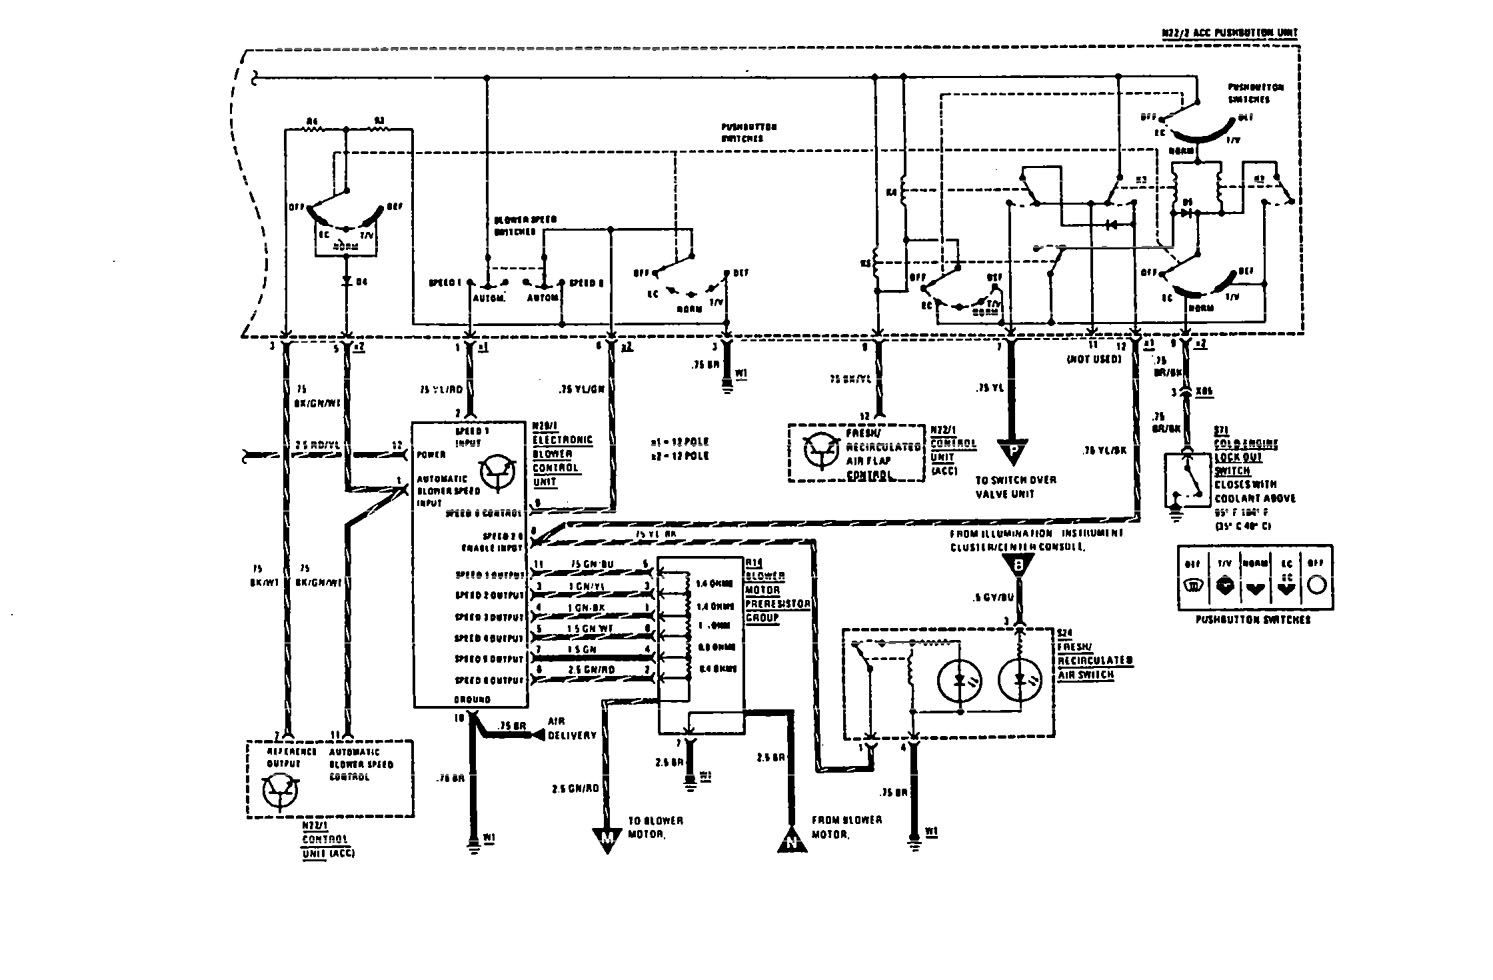 hight resolution of mercedes benz 300sel 1991 wiring diagram hvac oil furnace wiring diagram thermostat wiring diagram